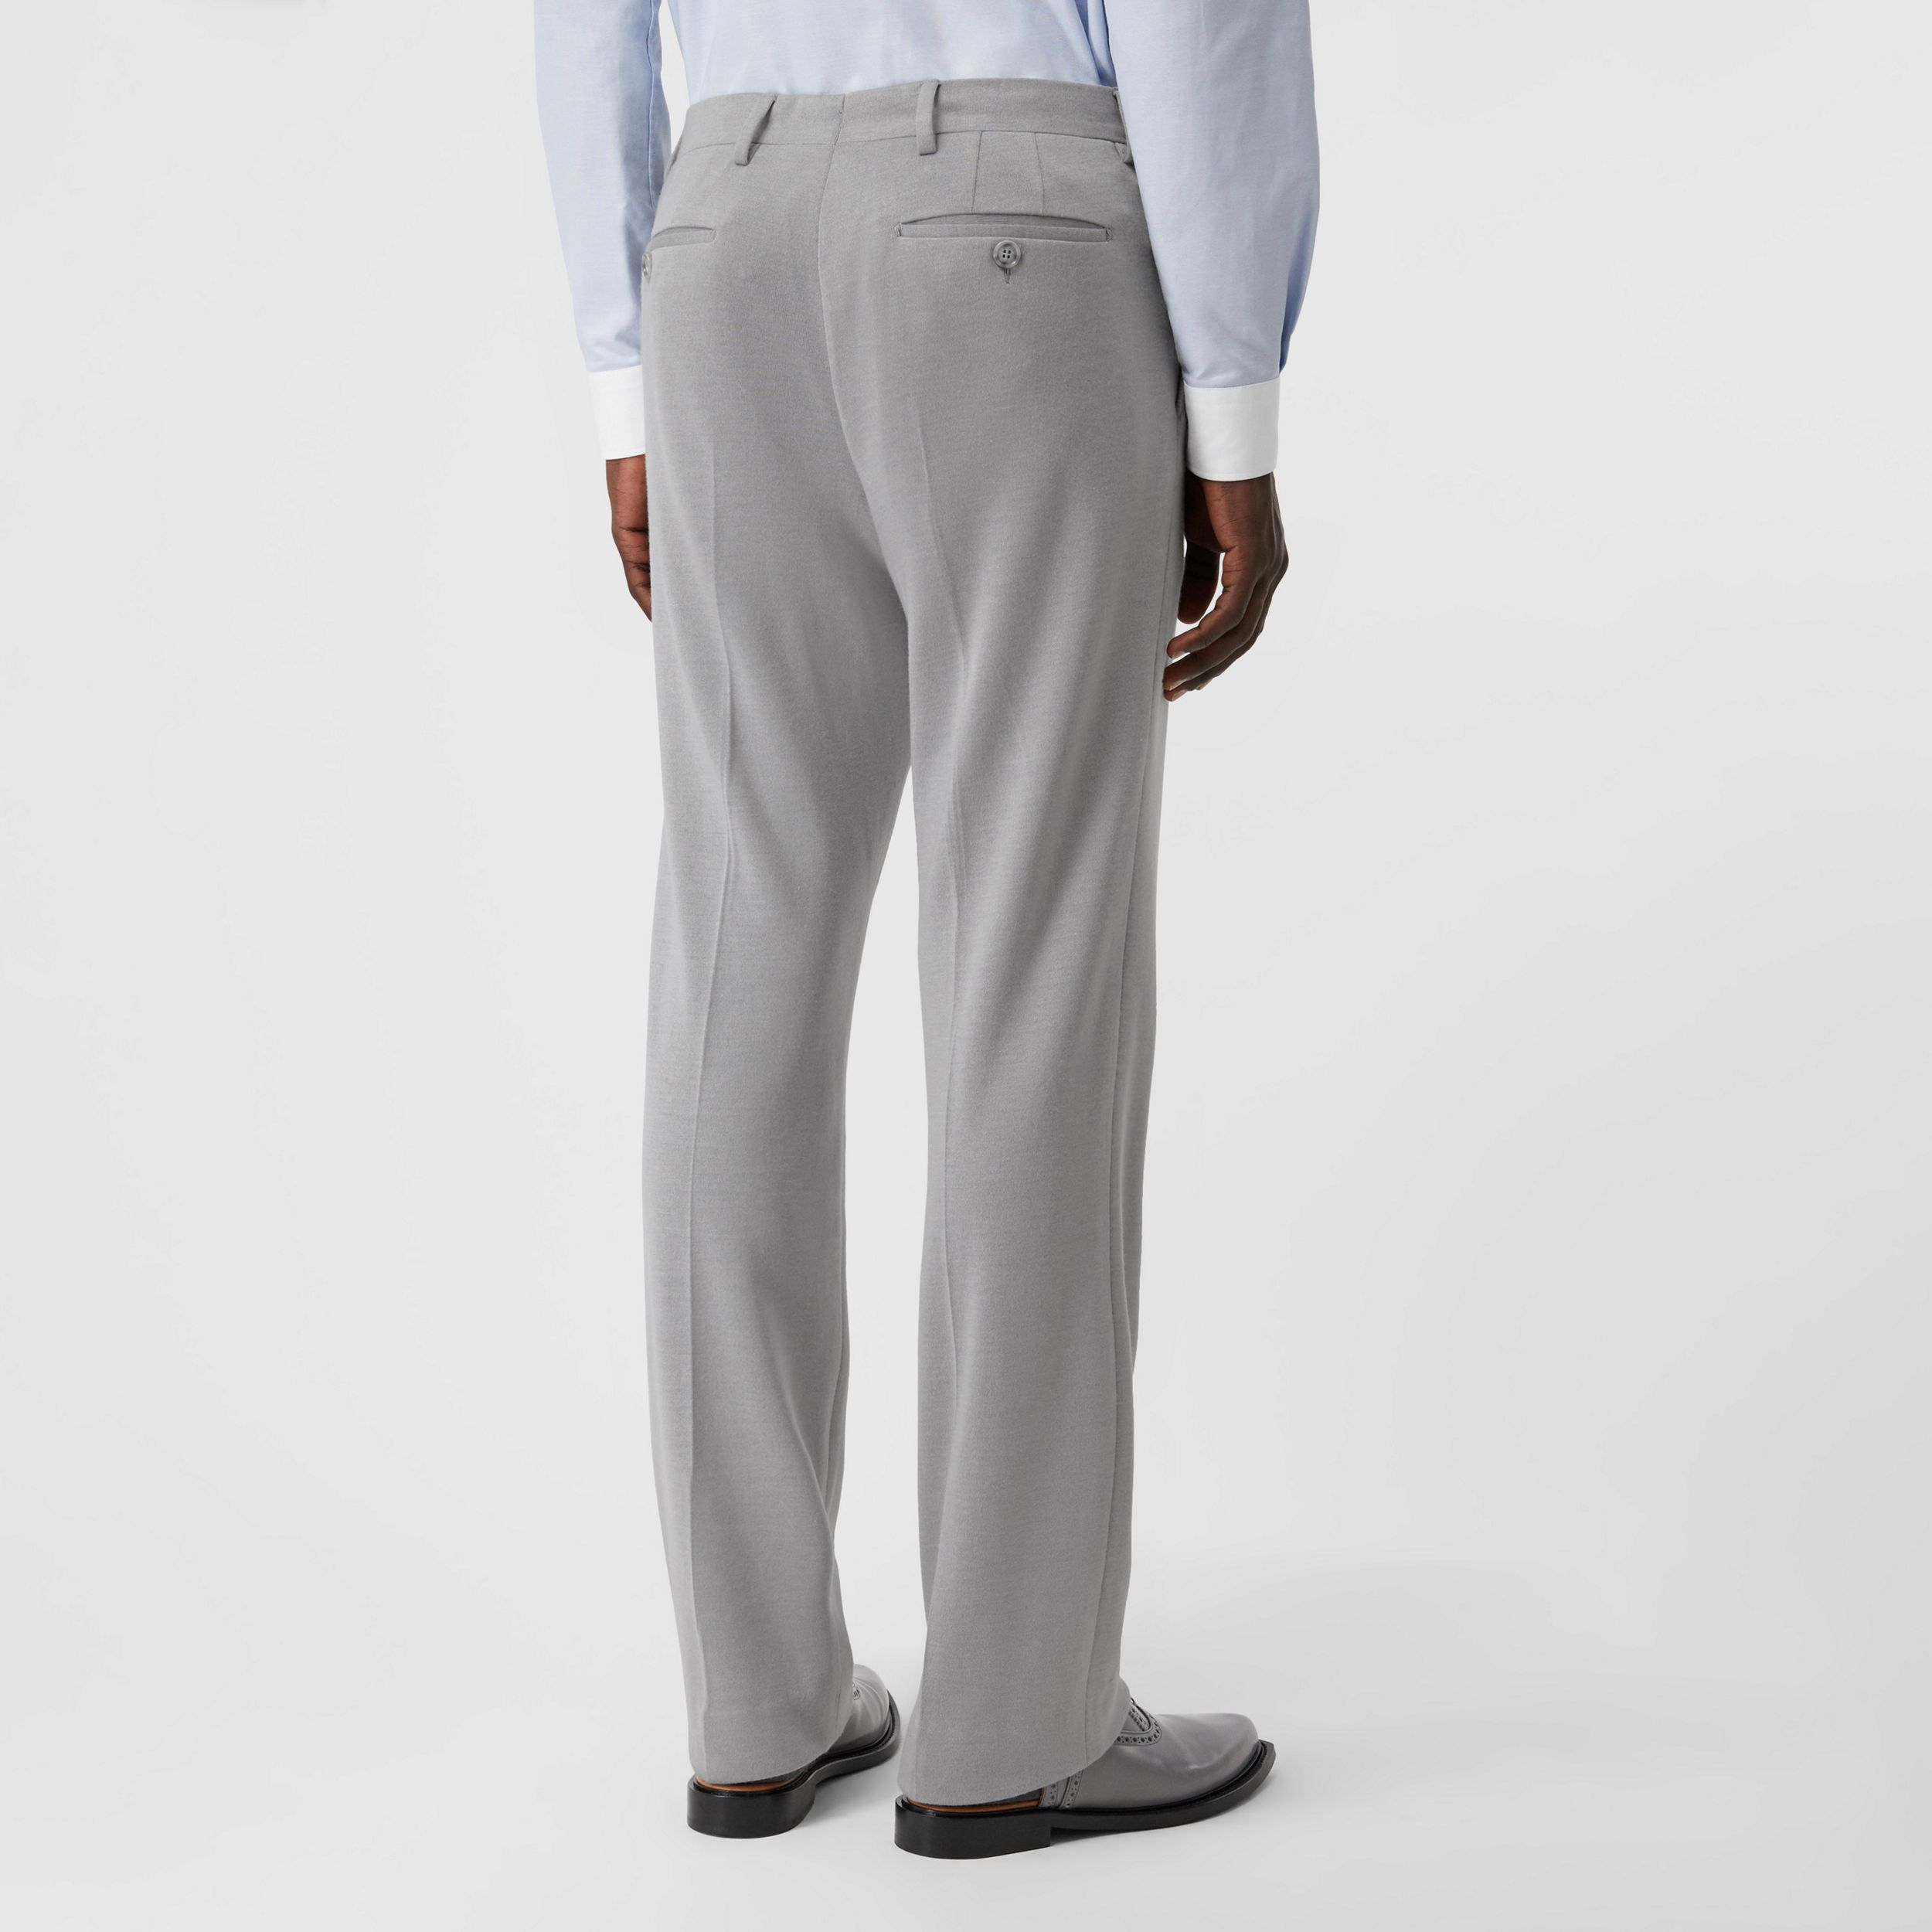 English Fit Cashmere Silk Jersey Tailored Trousers in Light Pebble Grey | Burberry - 3